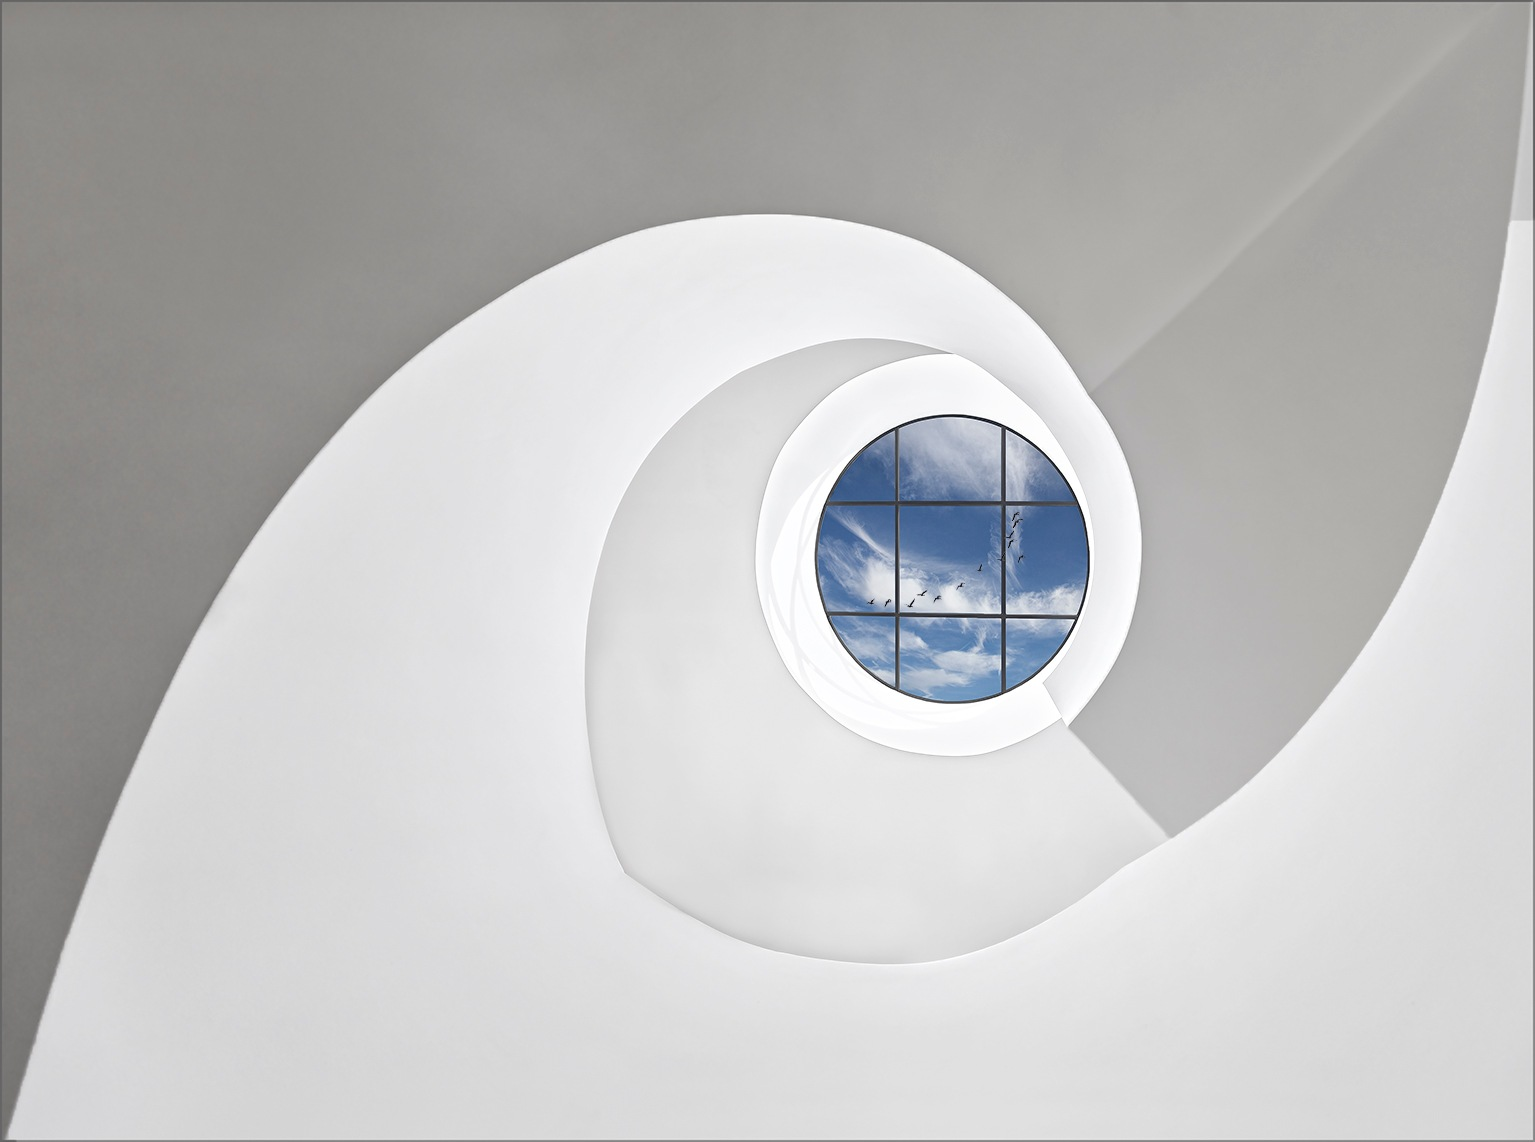 Spiral staircase at Leica_1 by Herbert A. Franke